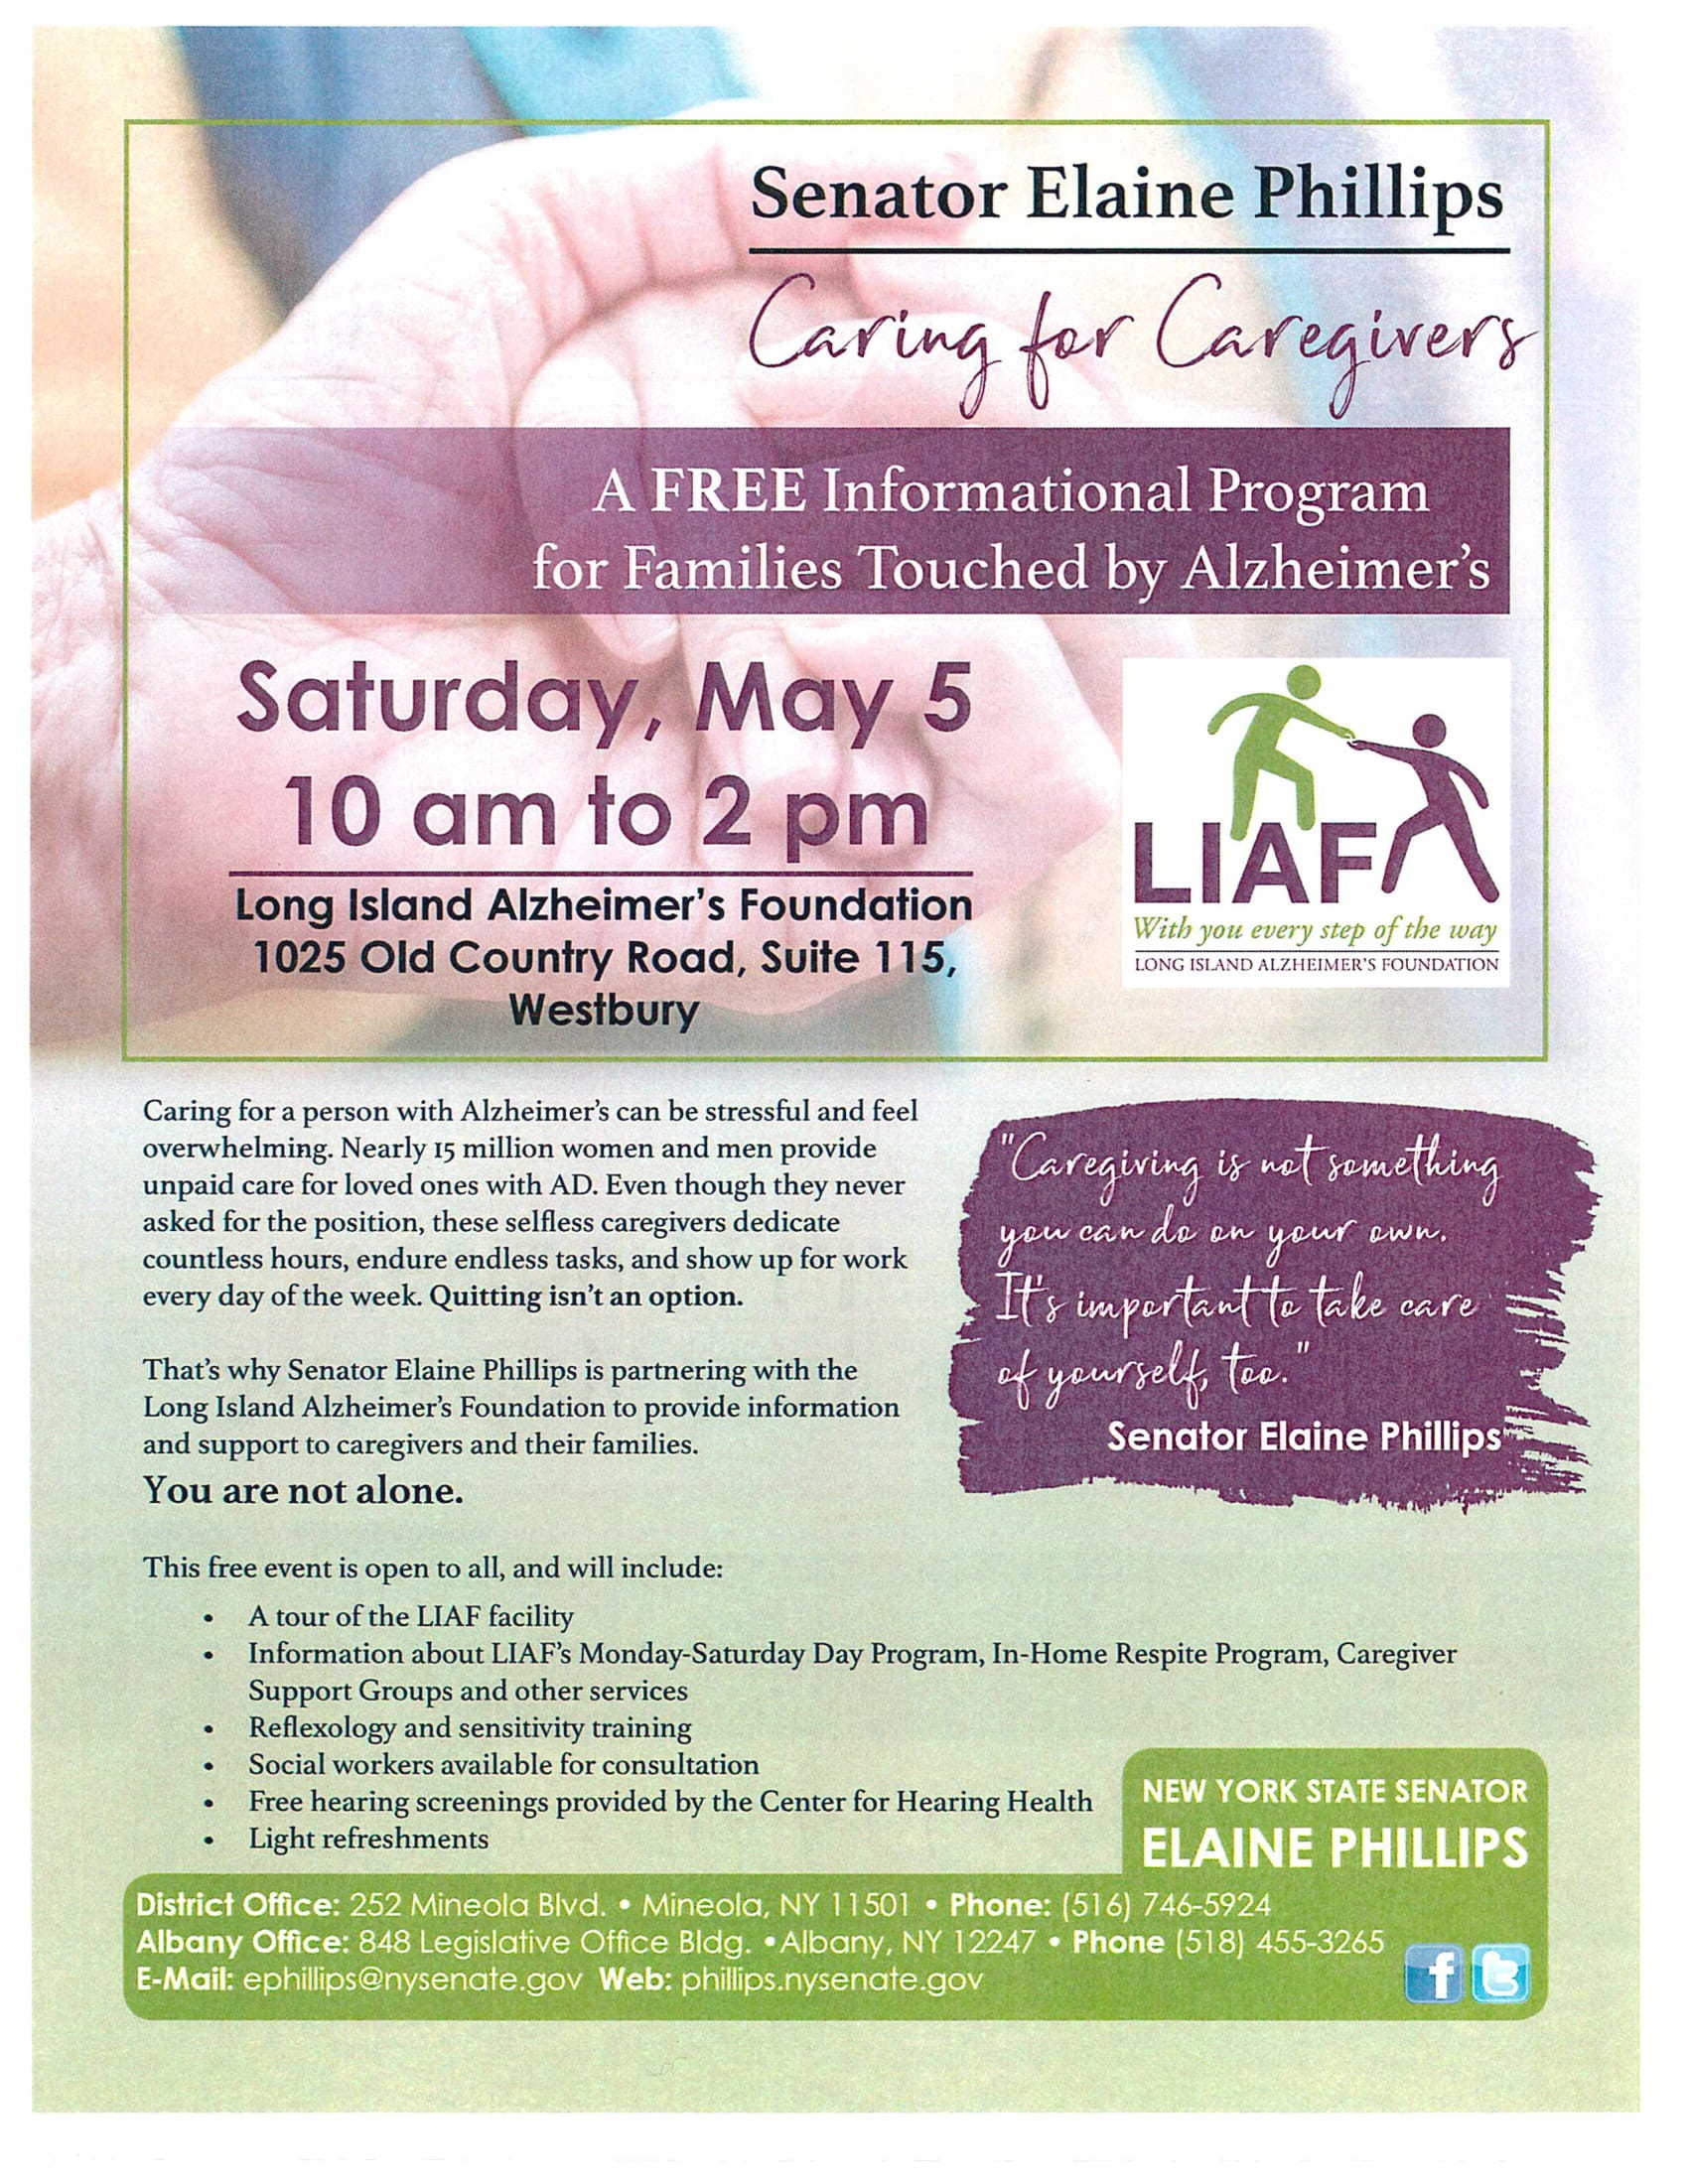 Senator Elaine Phillps - A FREE Informational Program for Families Touched by Alzheimer's